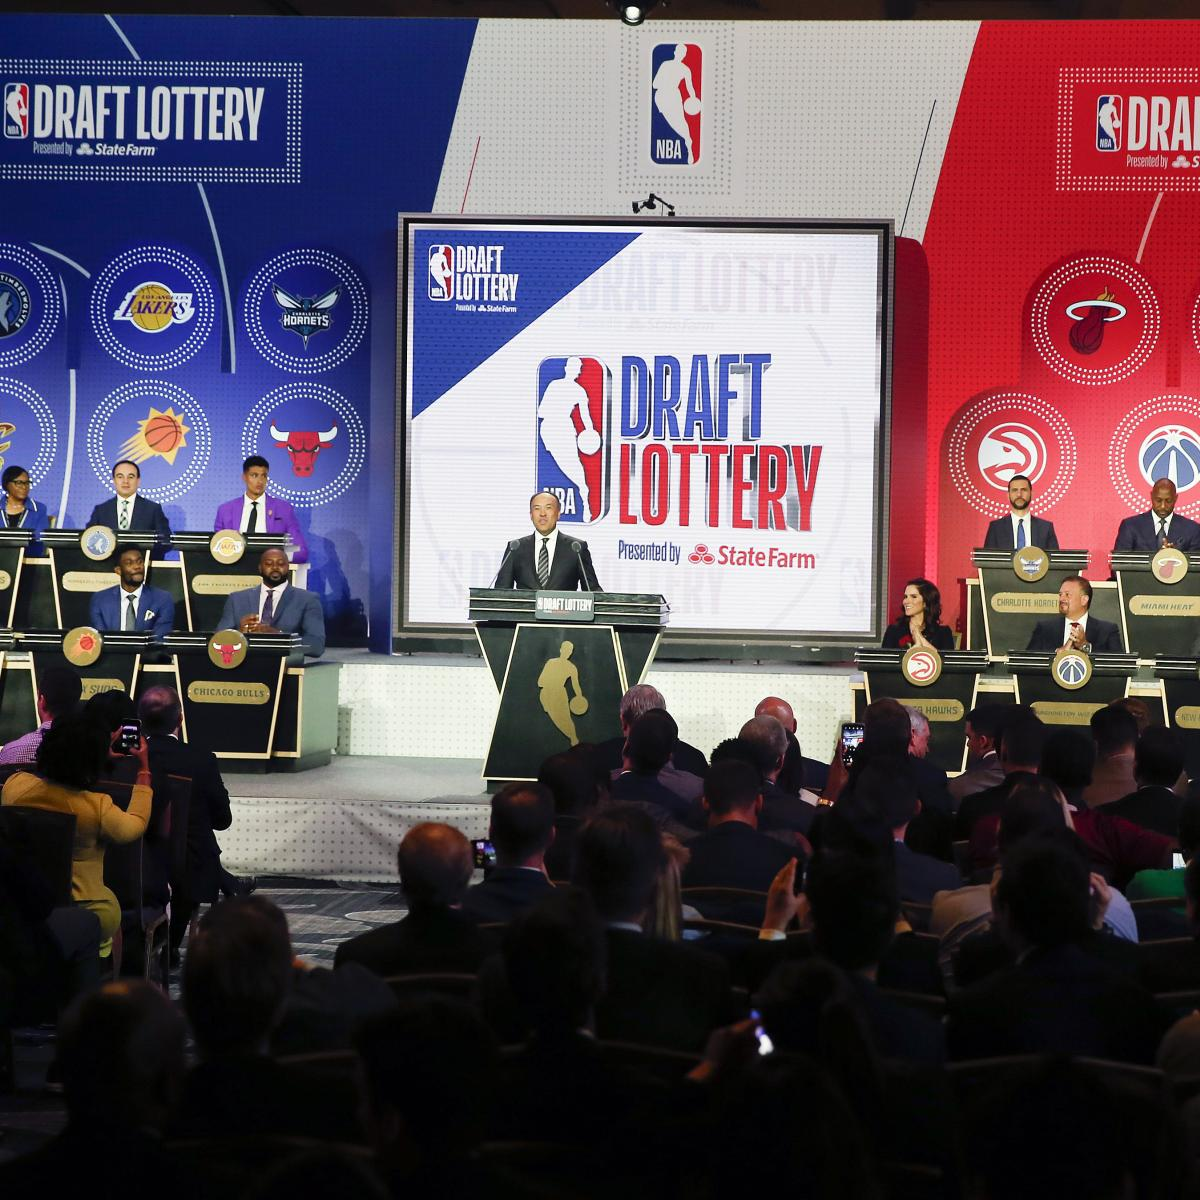 NBA Draft Lottery 2020: Projected Order and Odds for Every Team Involved